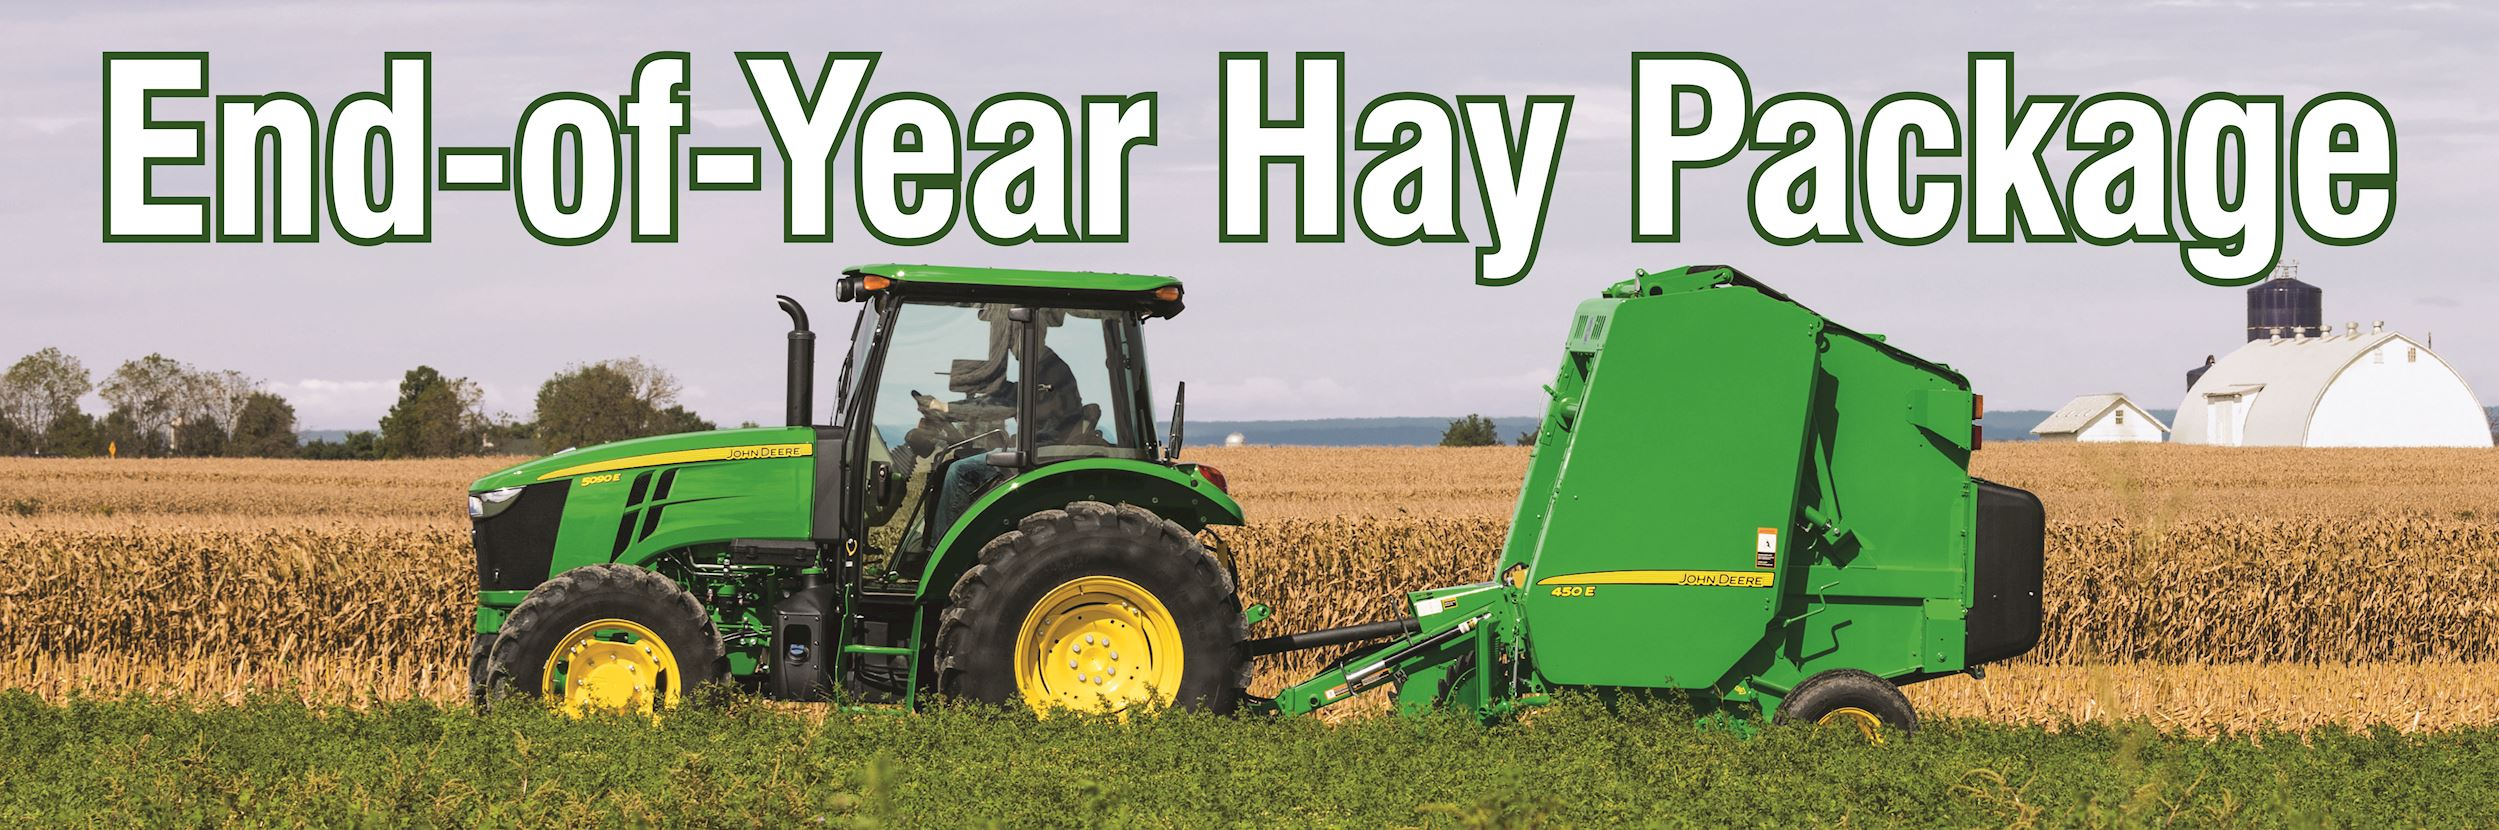 End of Year Hay Package